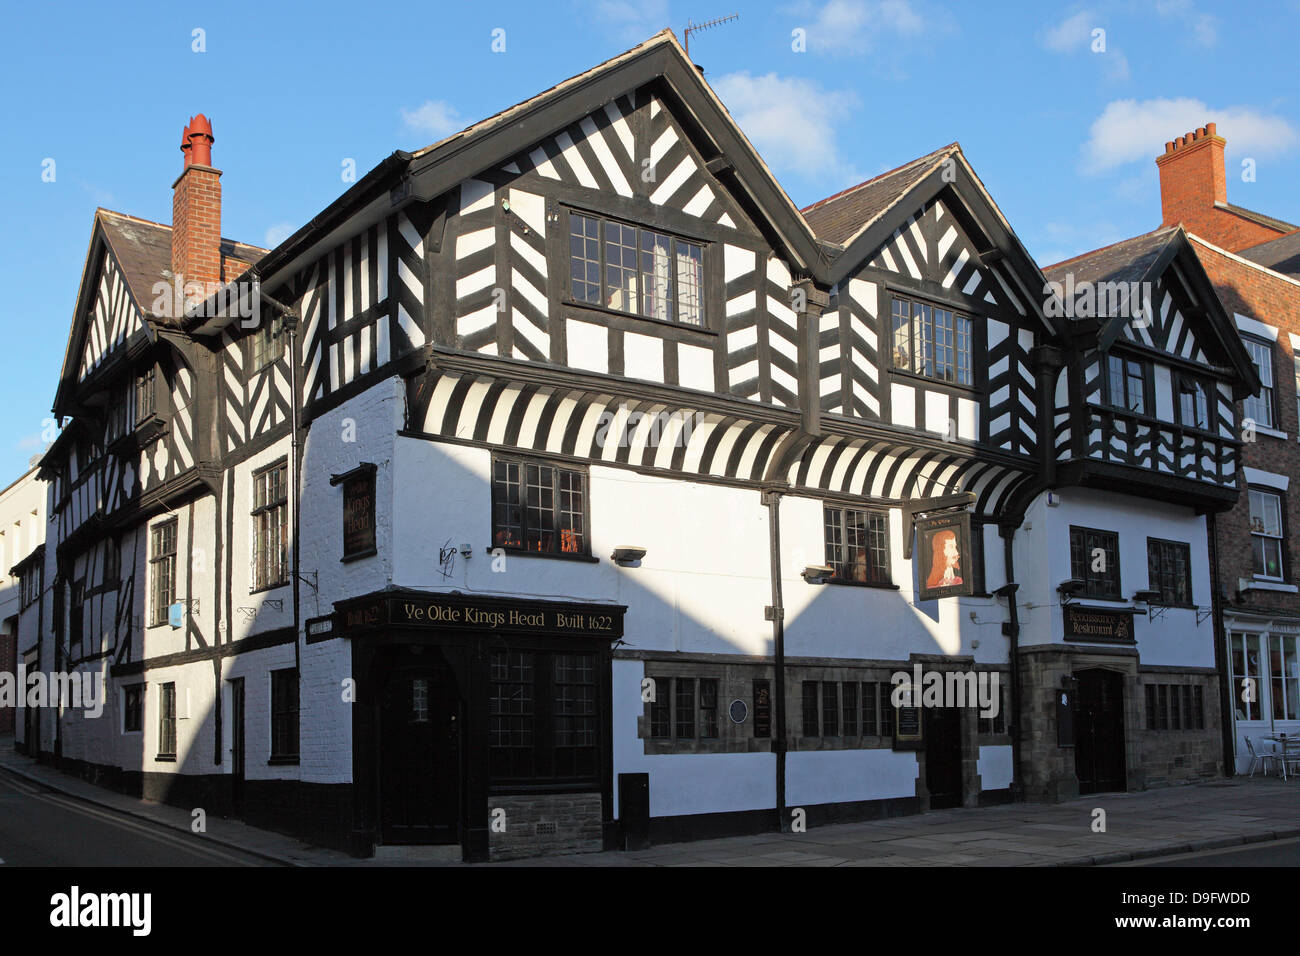 The Olde King's Head, a British pub, dating from the 17th century, in Chester, Cheshire, England, UK - Stock Image